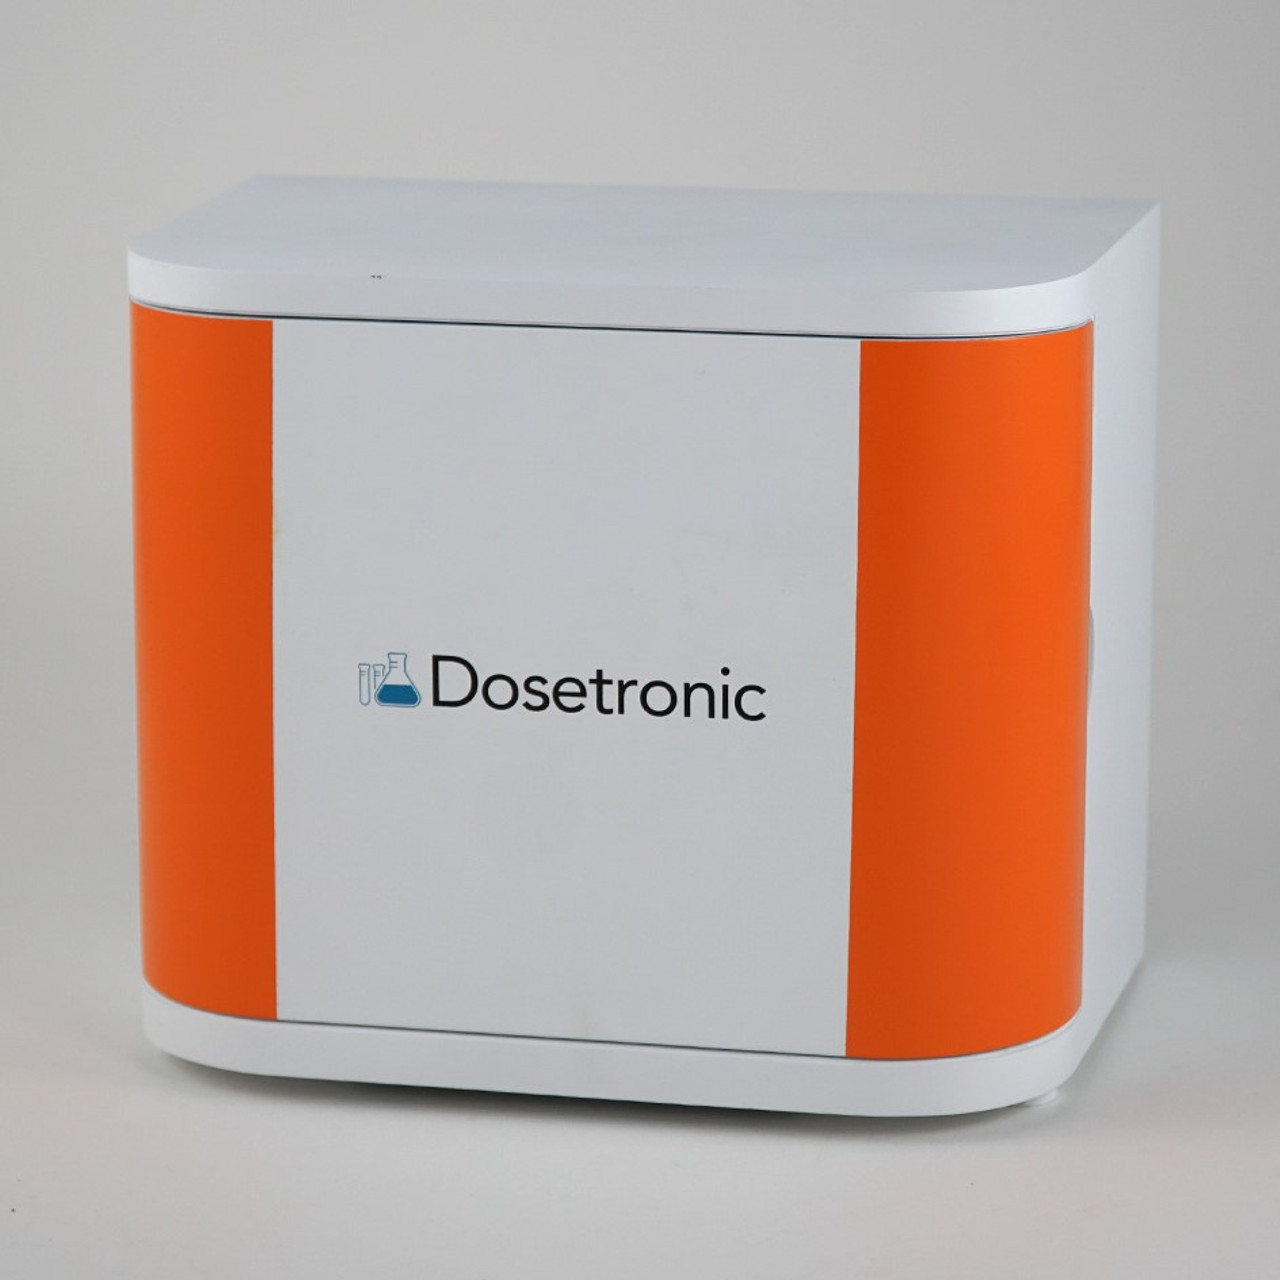 Dosetronic 5 Stepper Pump WIFI Doser